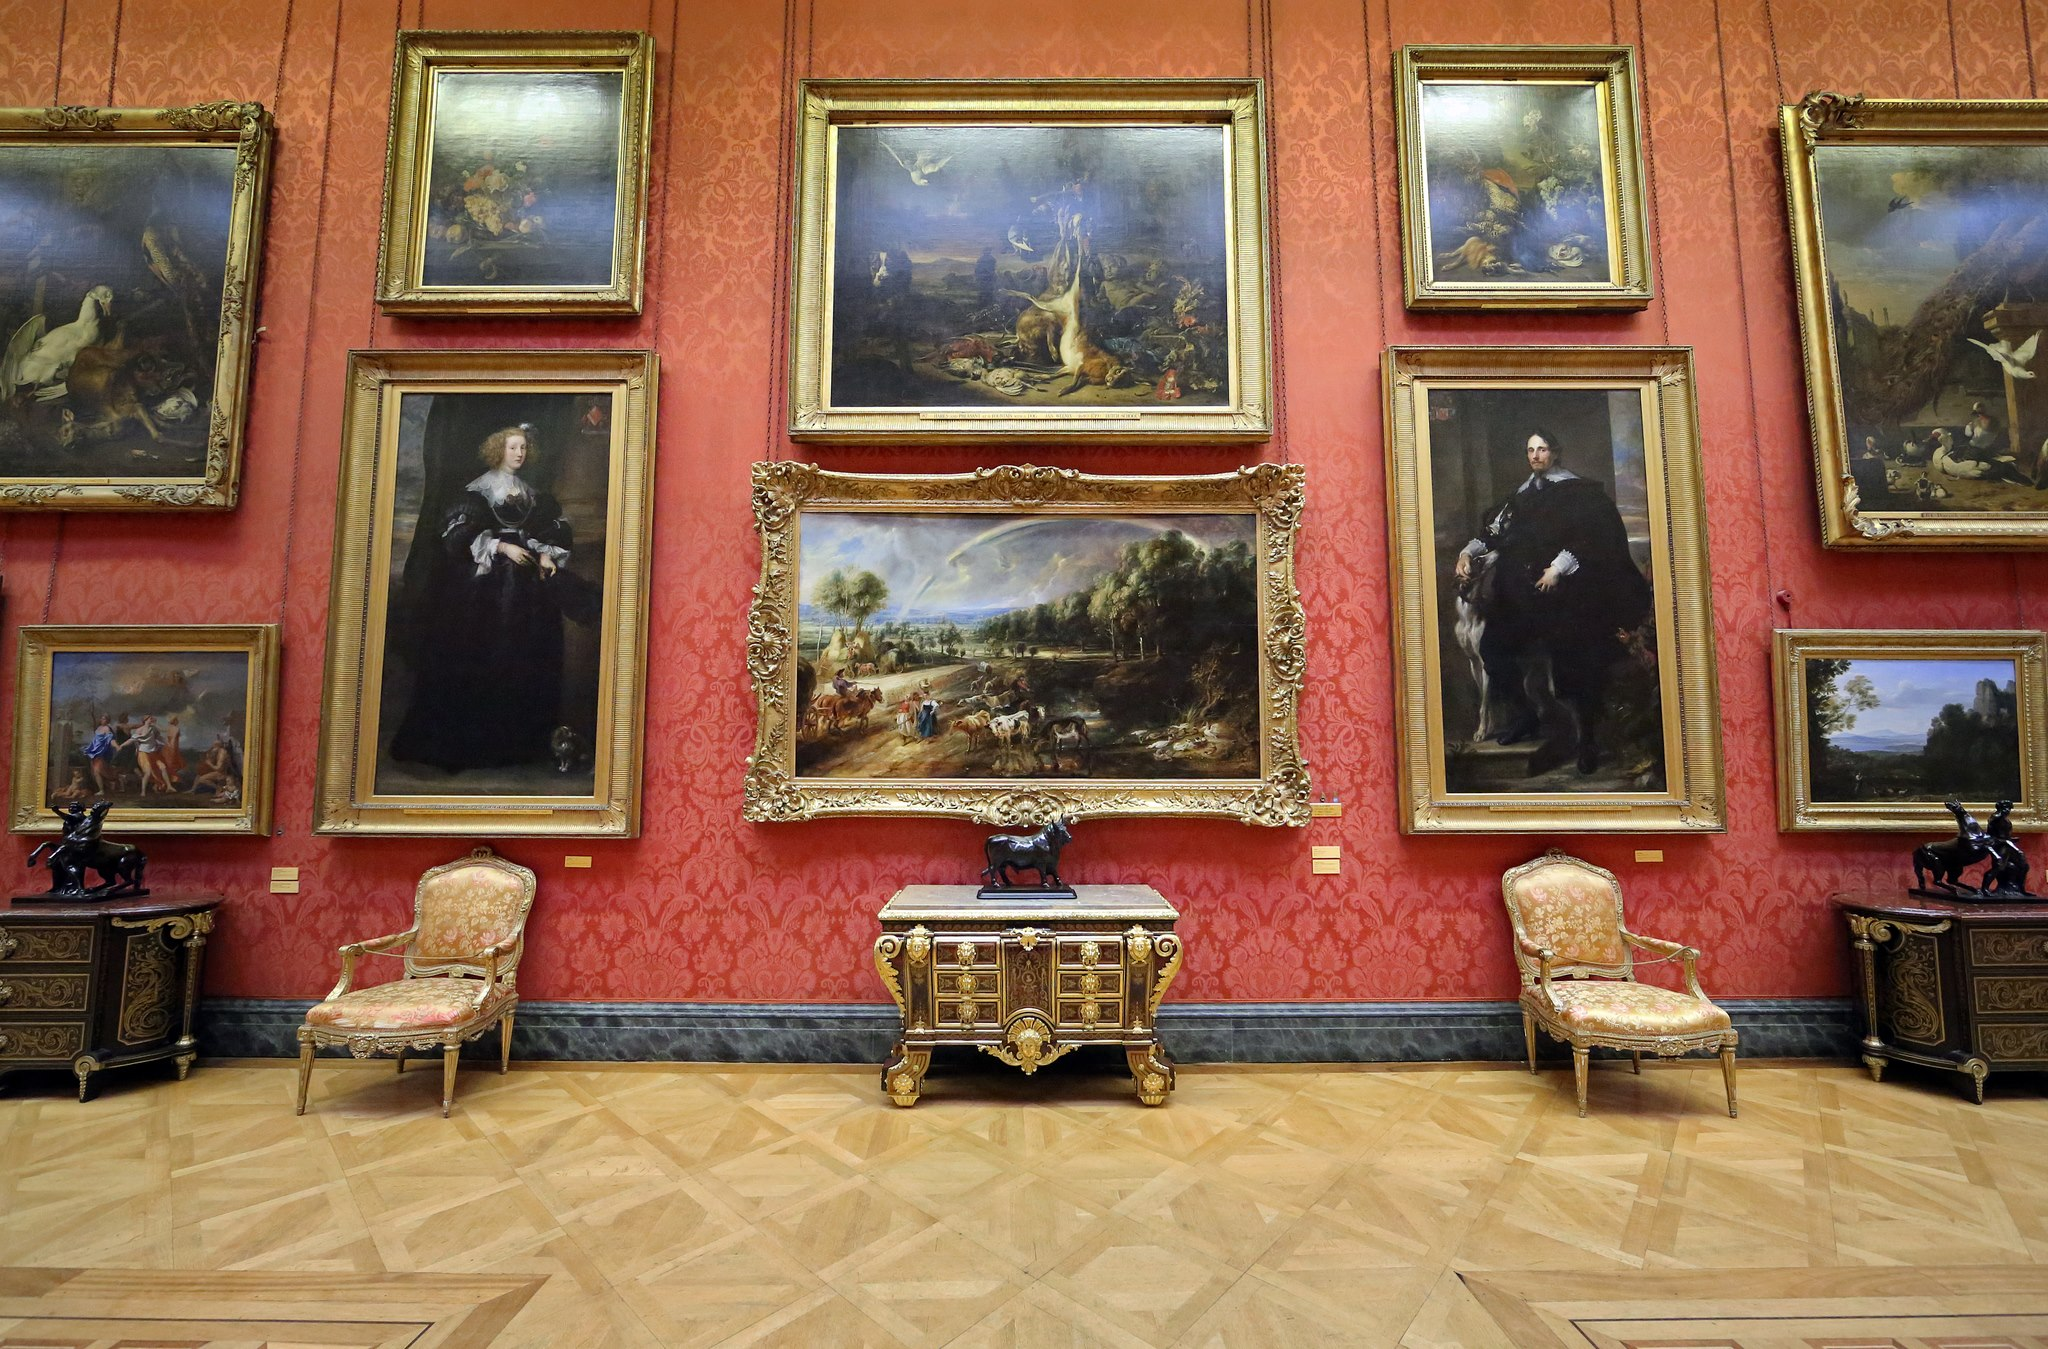 The_Great_Gallery_In_the_Wallace_Collection,_London_in_July_2012[1]